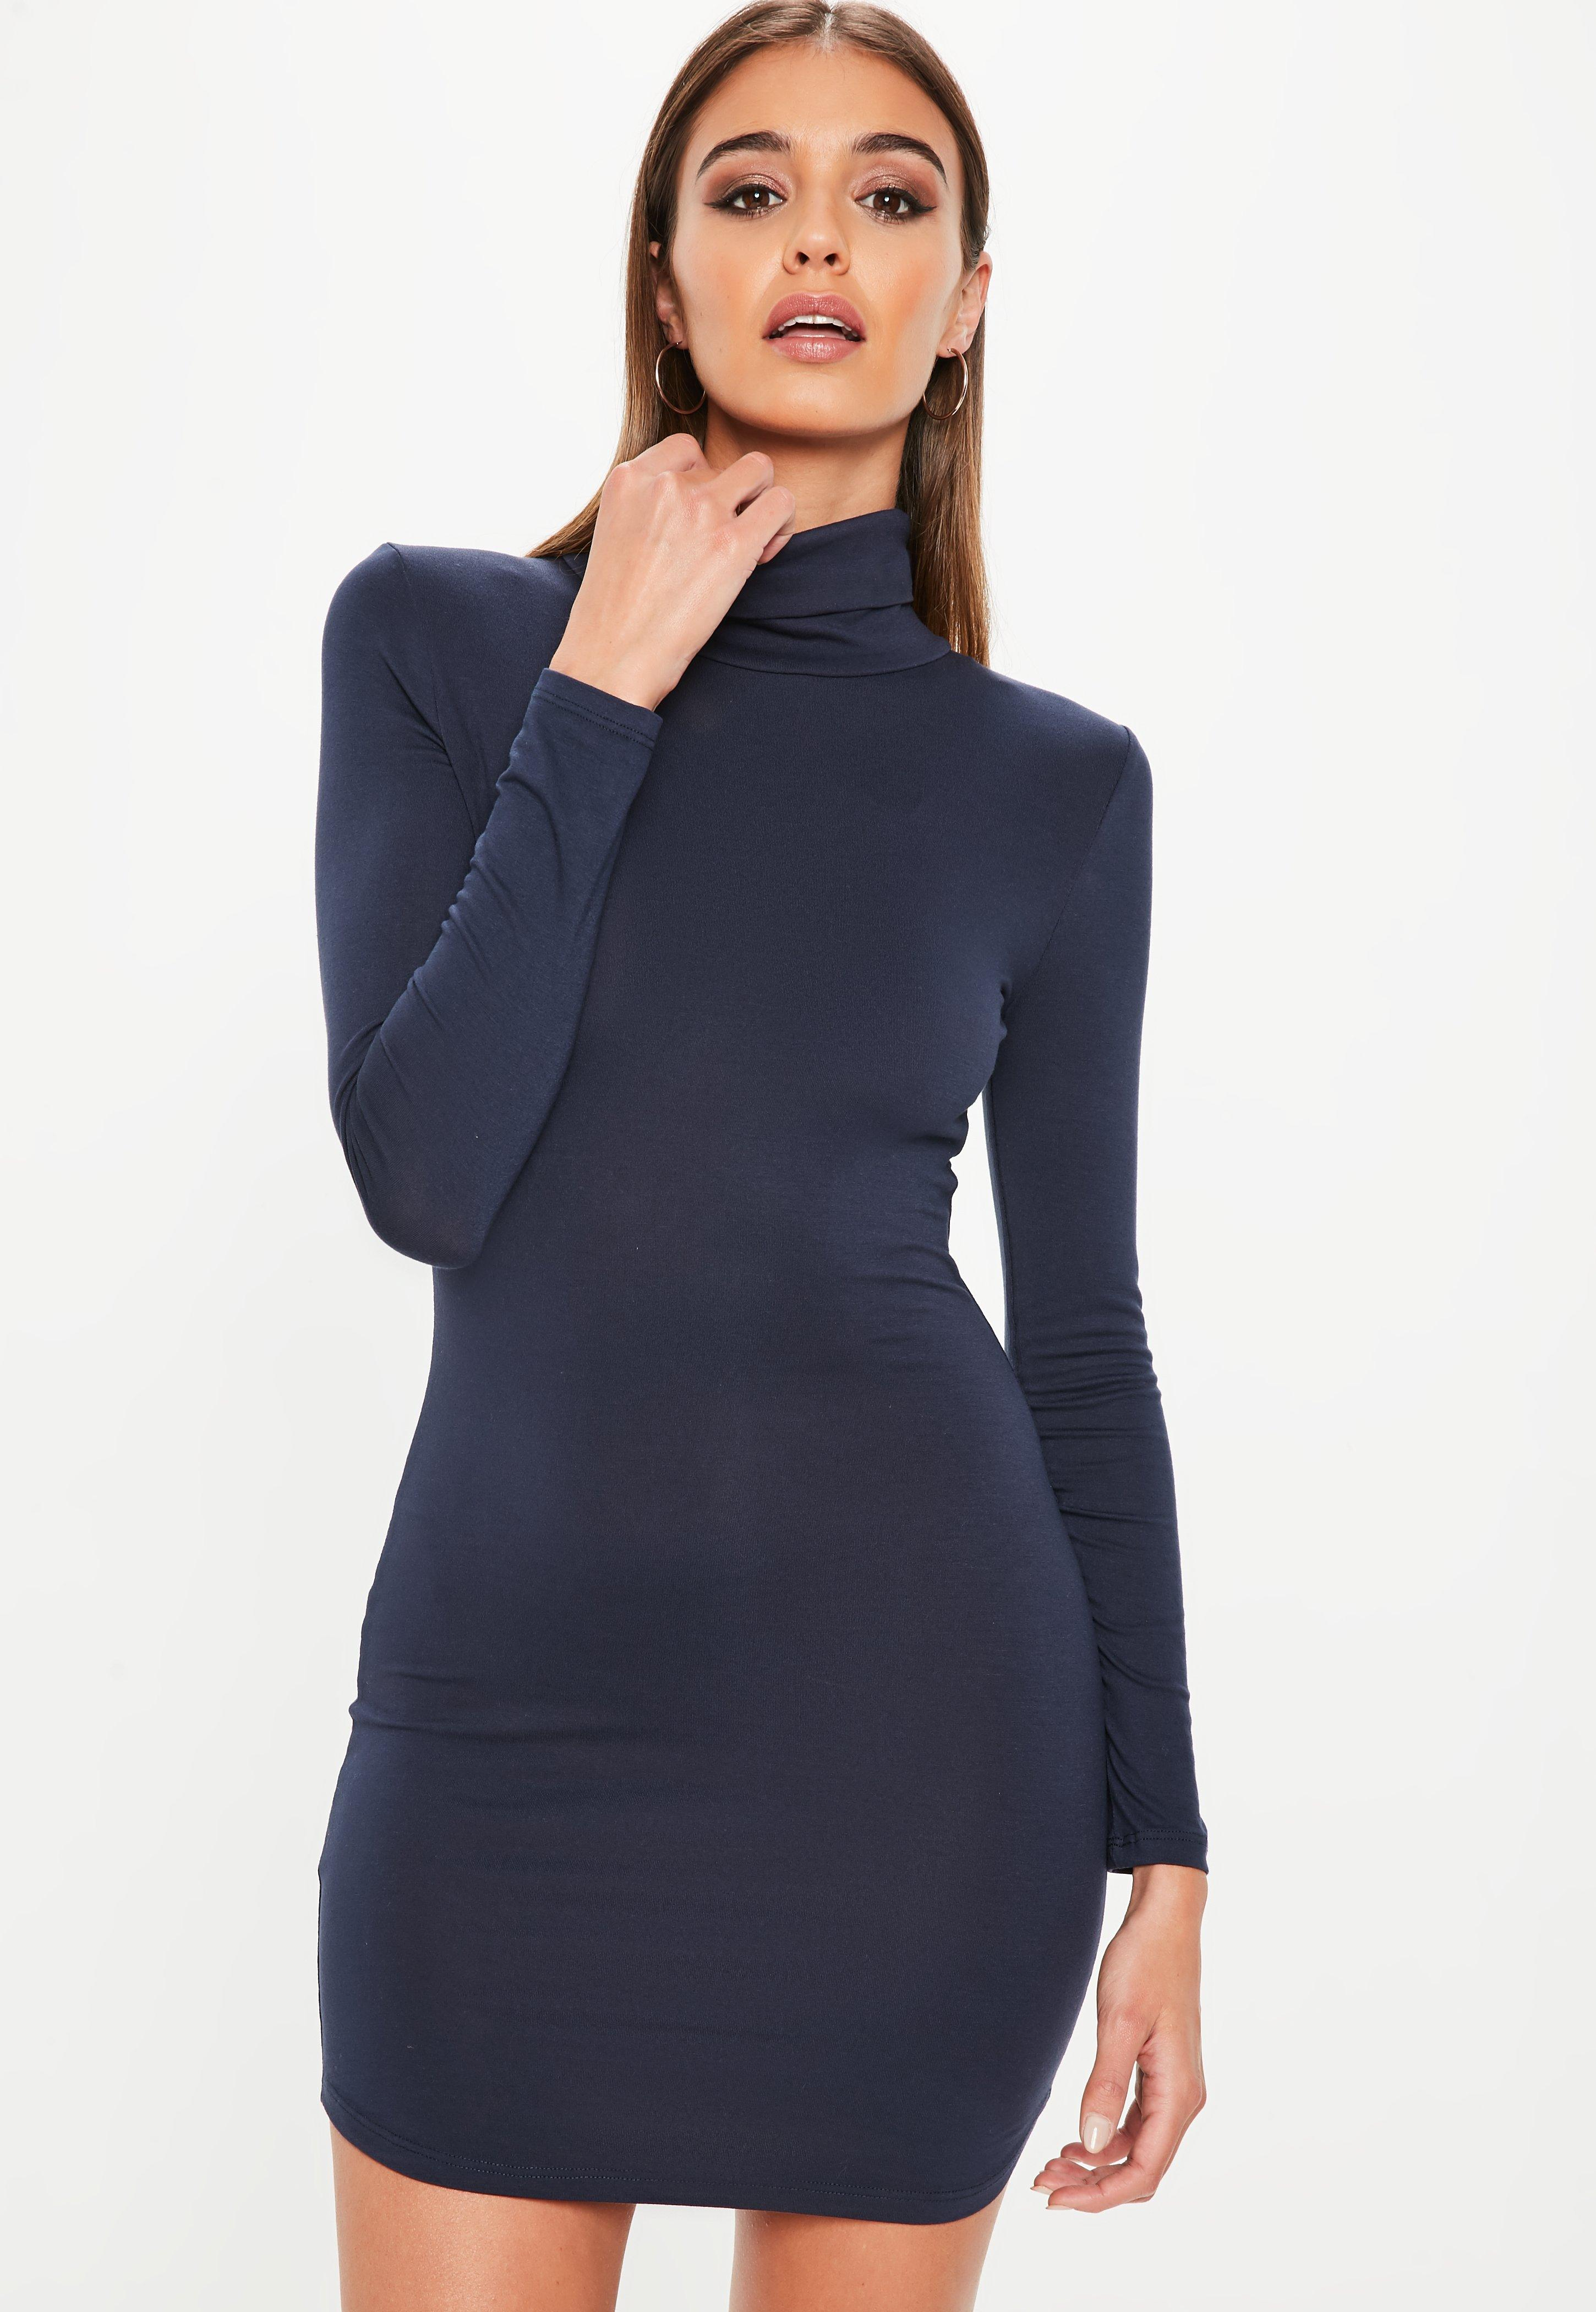 The long sleeved dresses and their enchanting looks